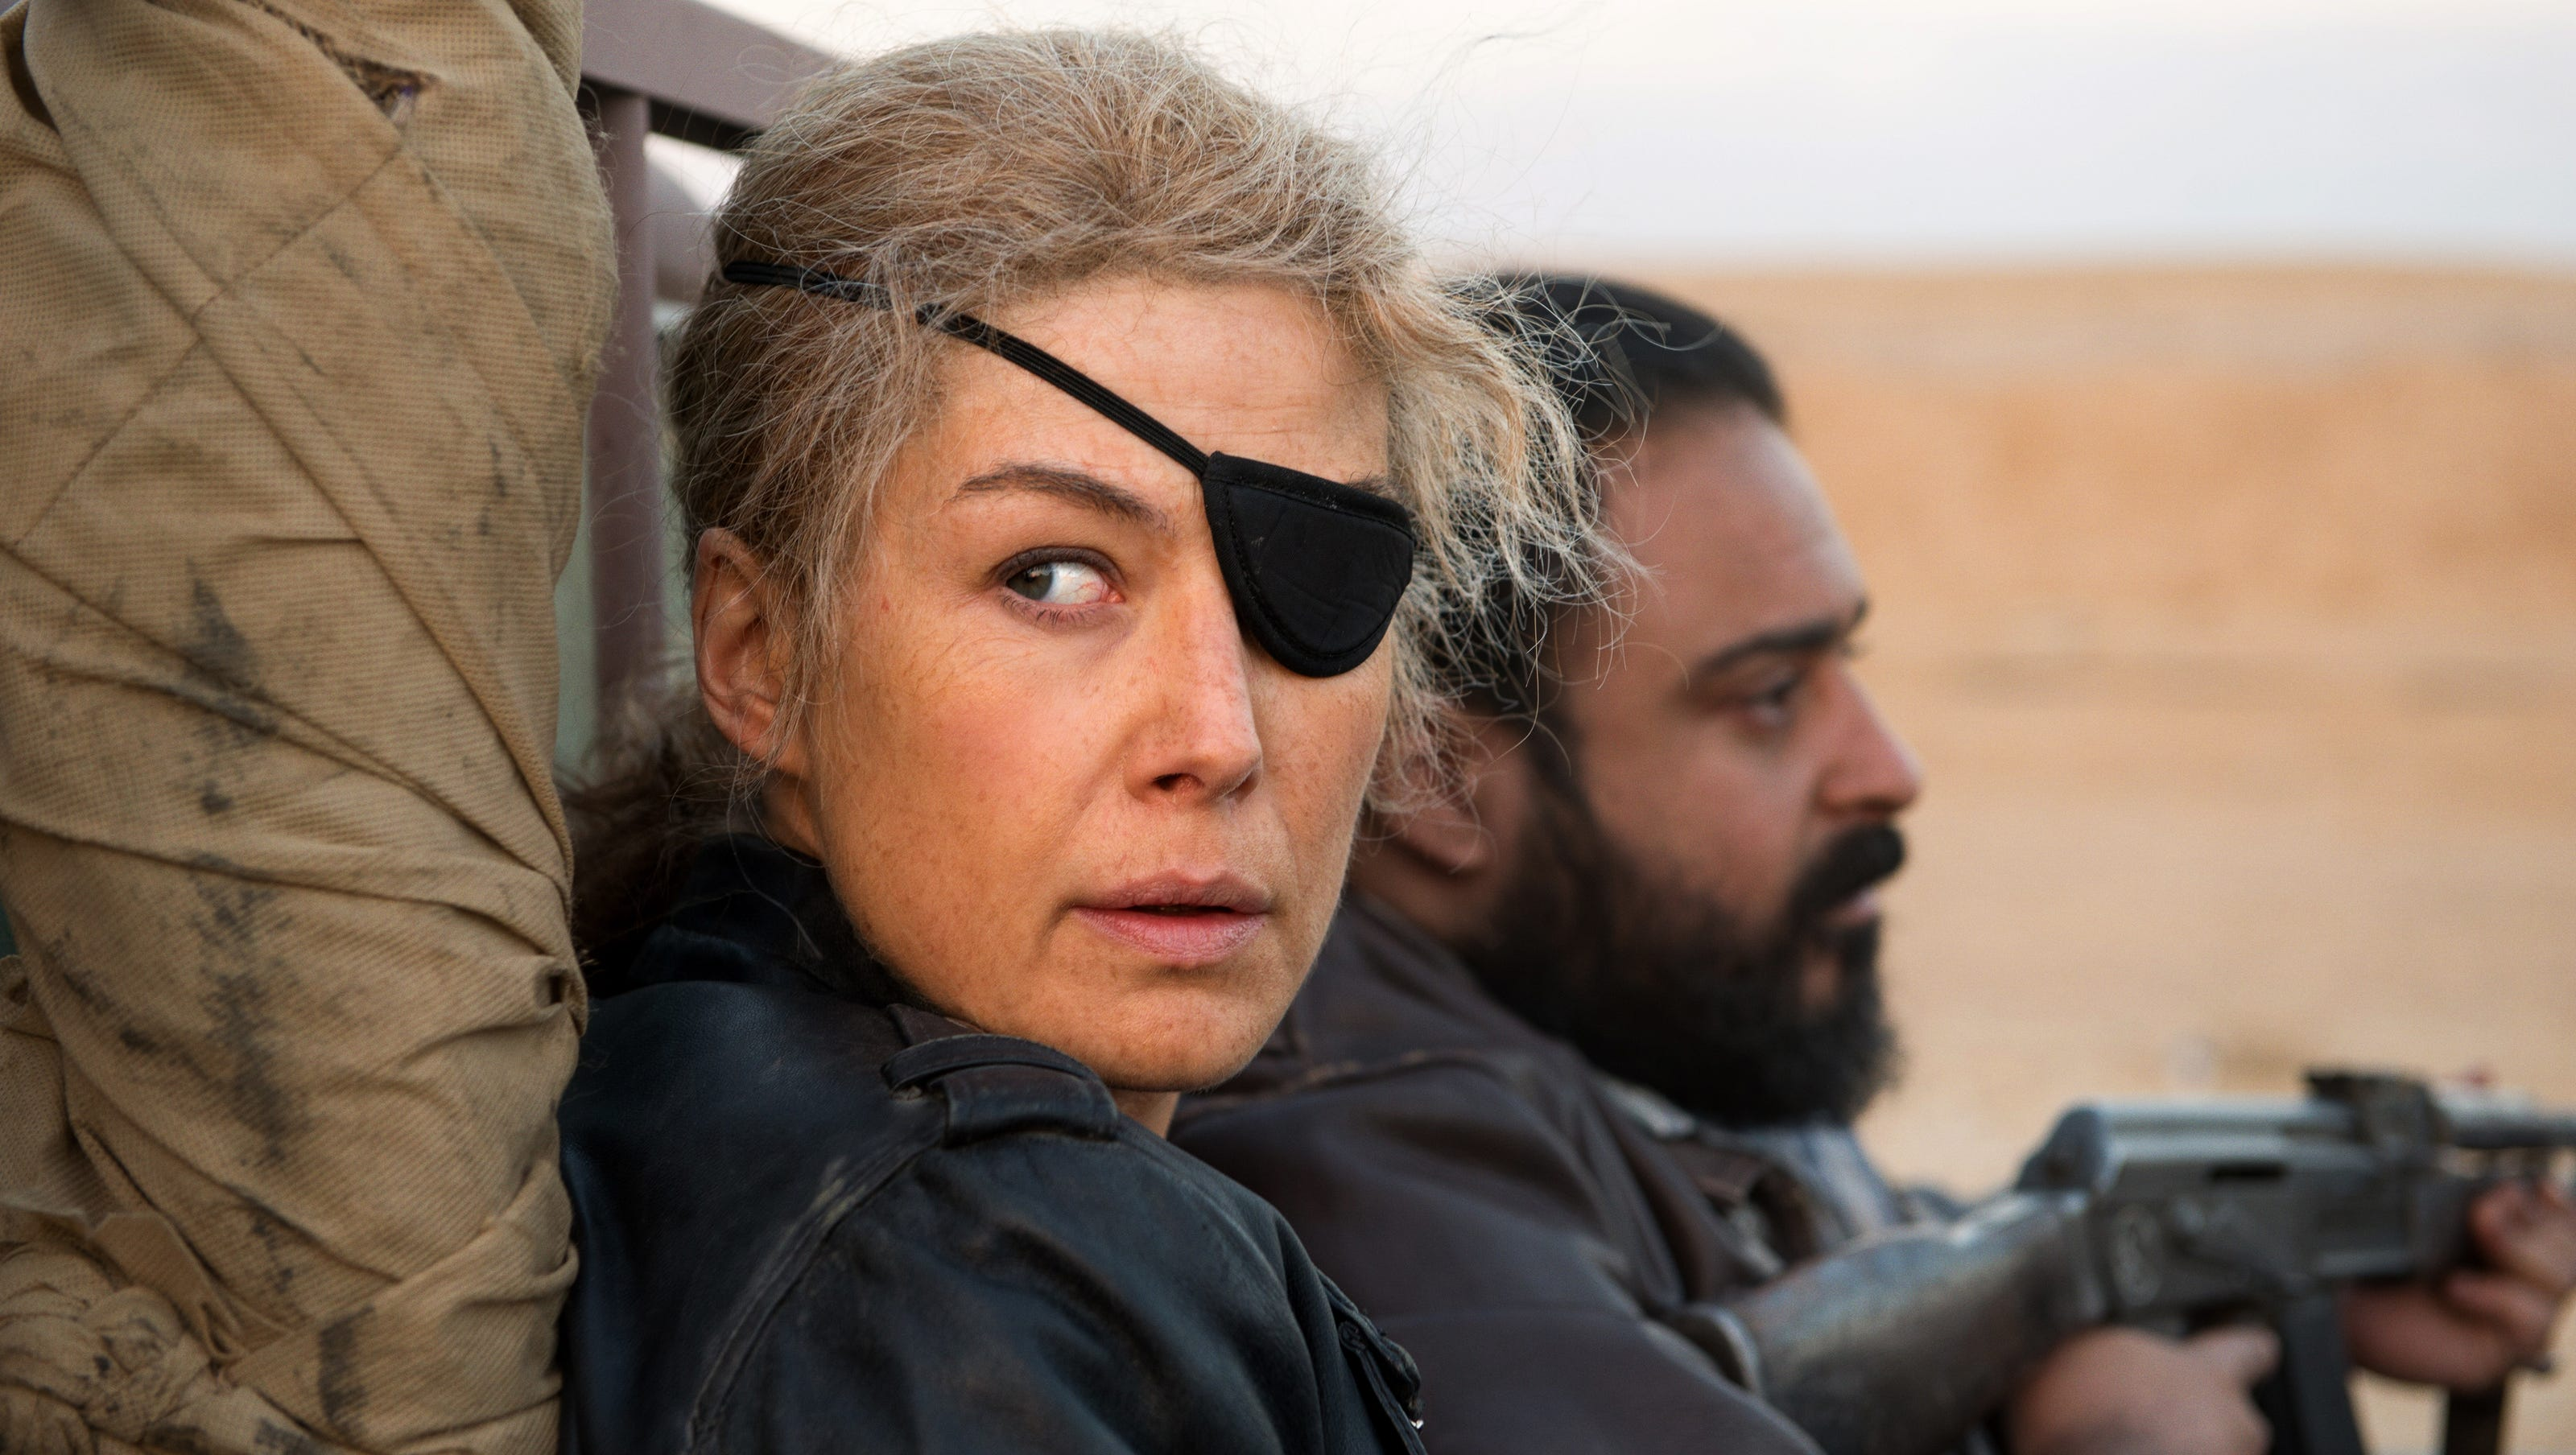 Exclusive trailer: Rosamund Pike fights 'A Private War' as ...